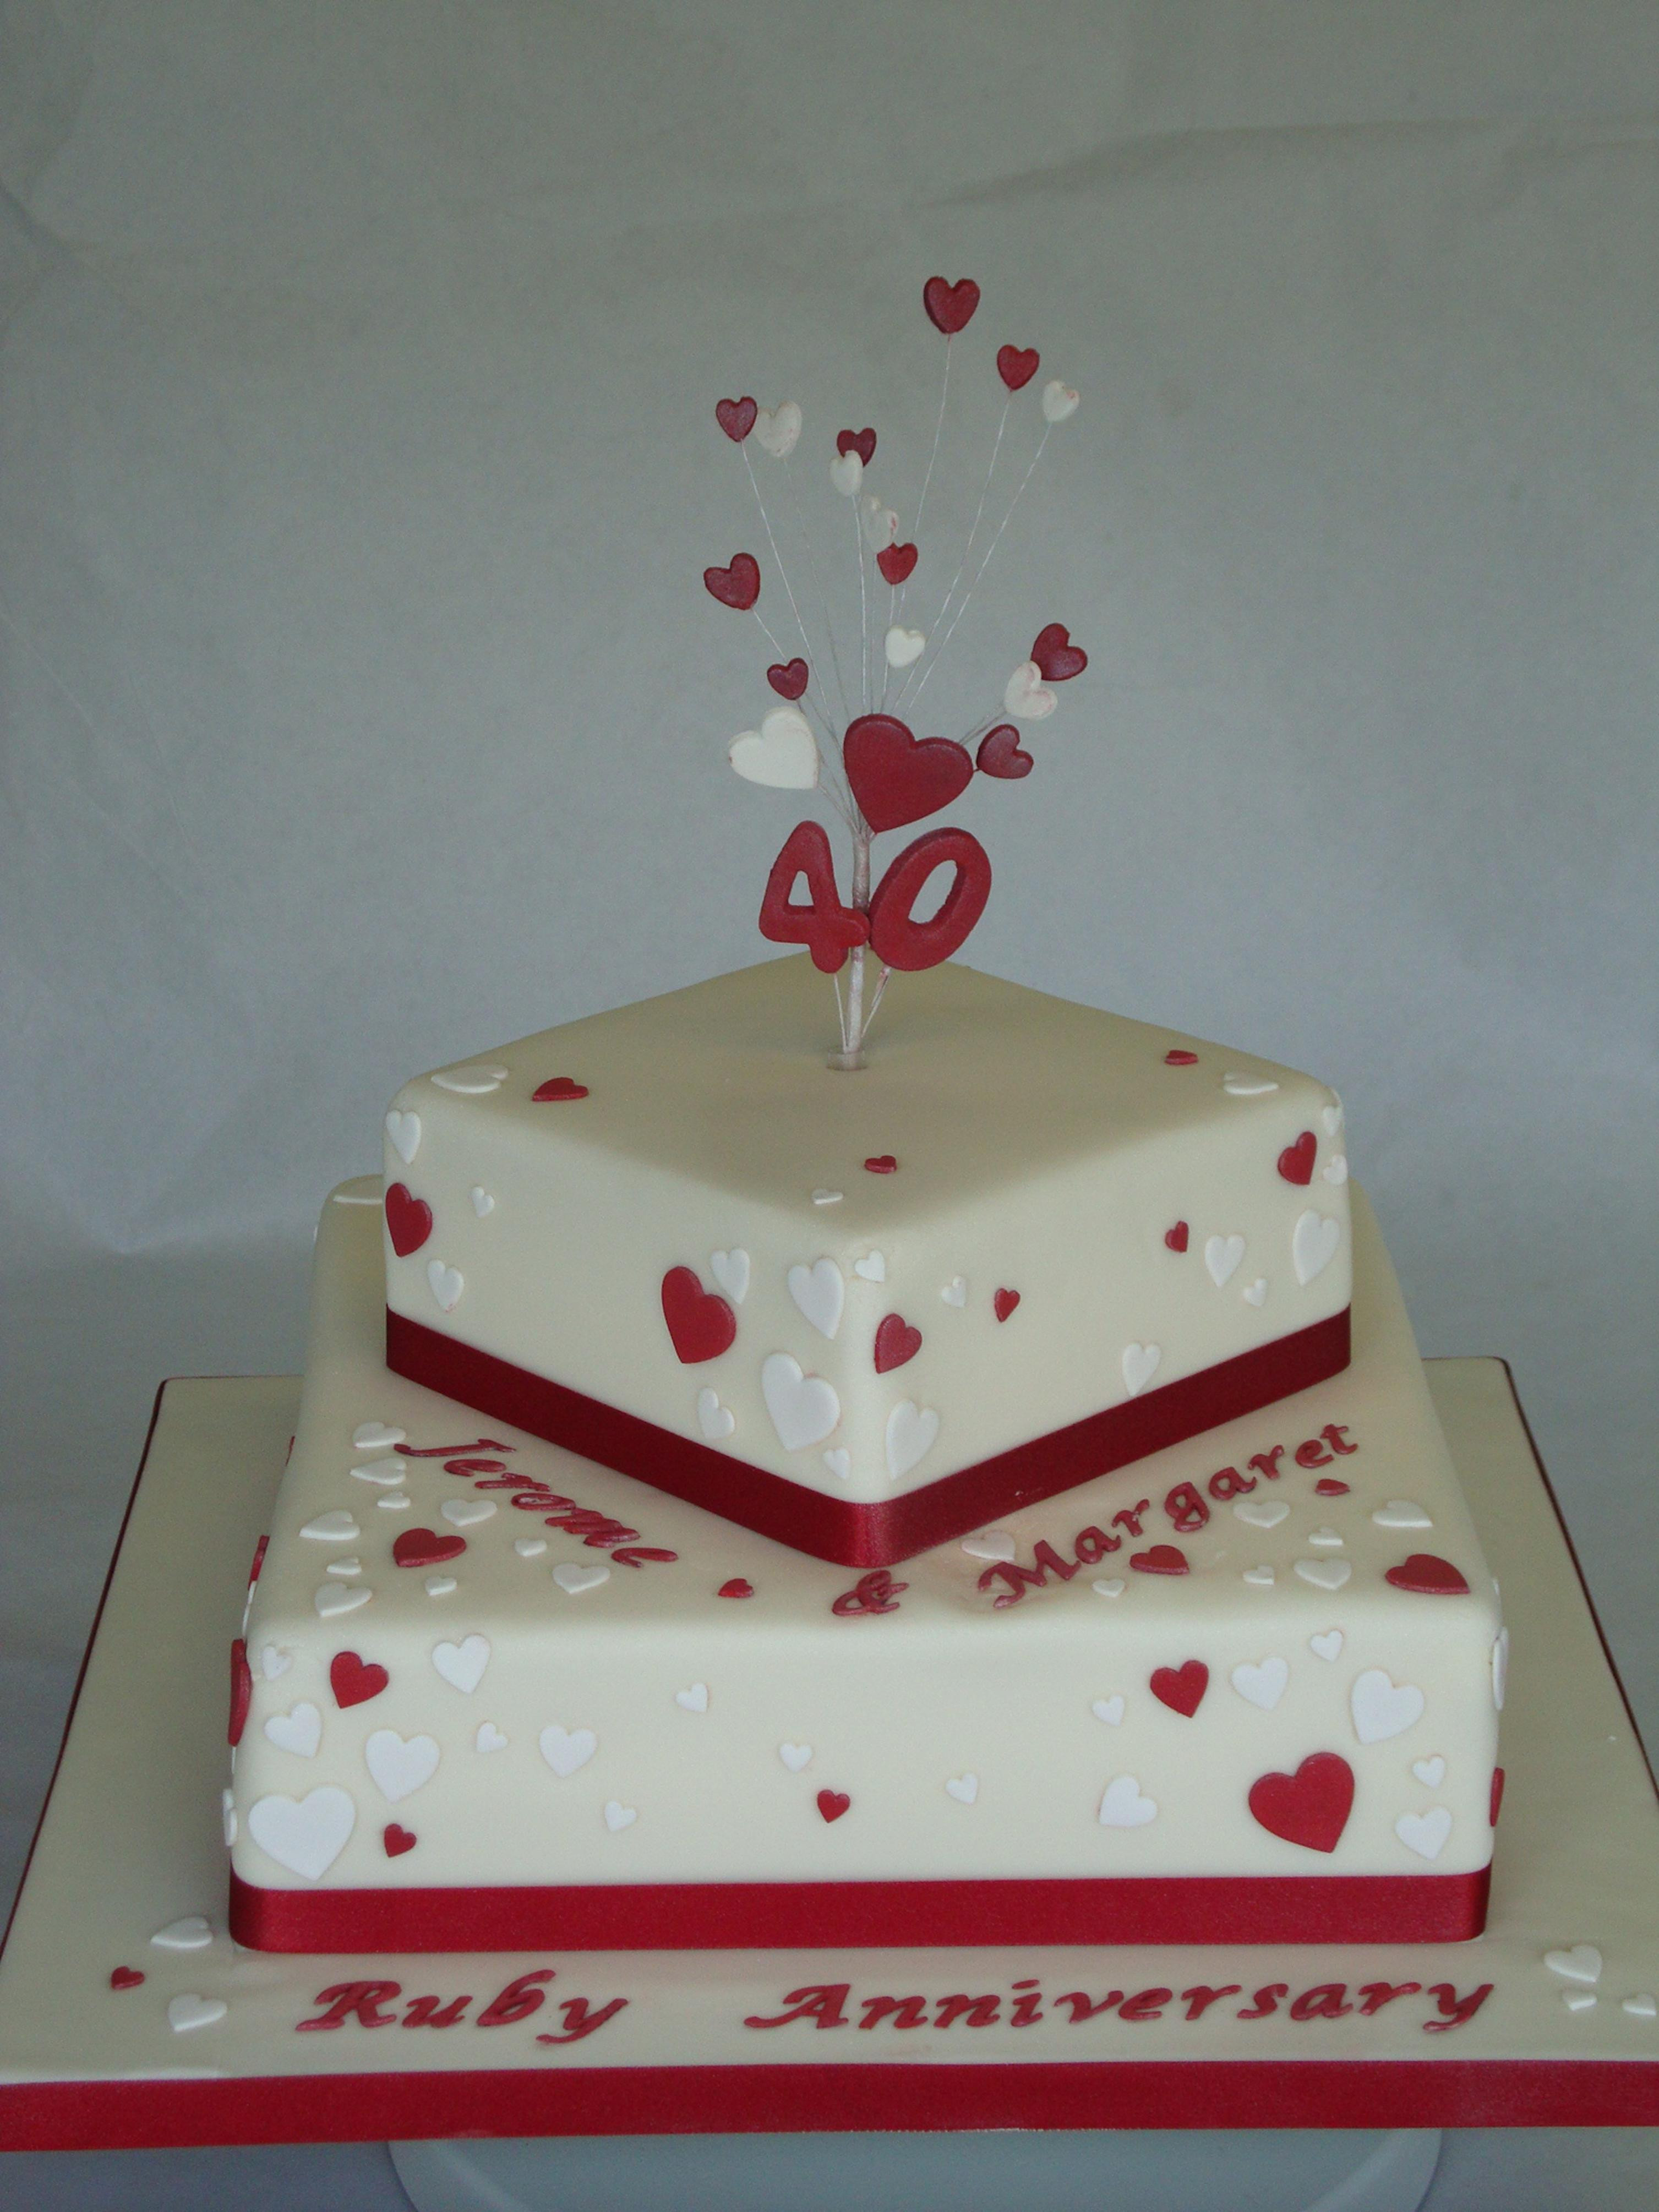 Wedding Anniversary Cakes Images  Cool Wedding Marriage Anniversary Cakes With Names